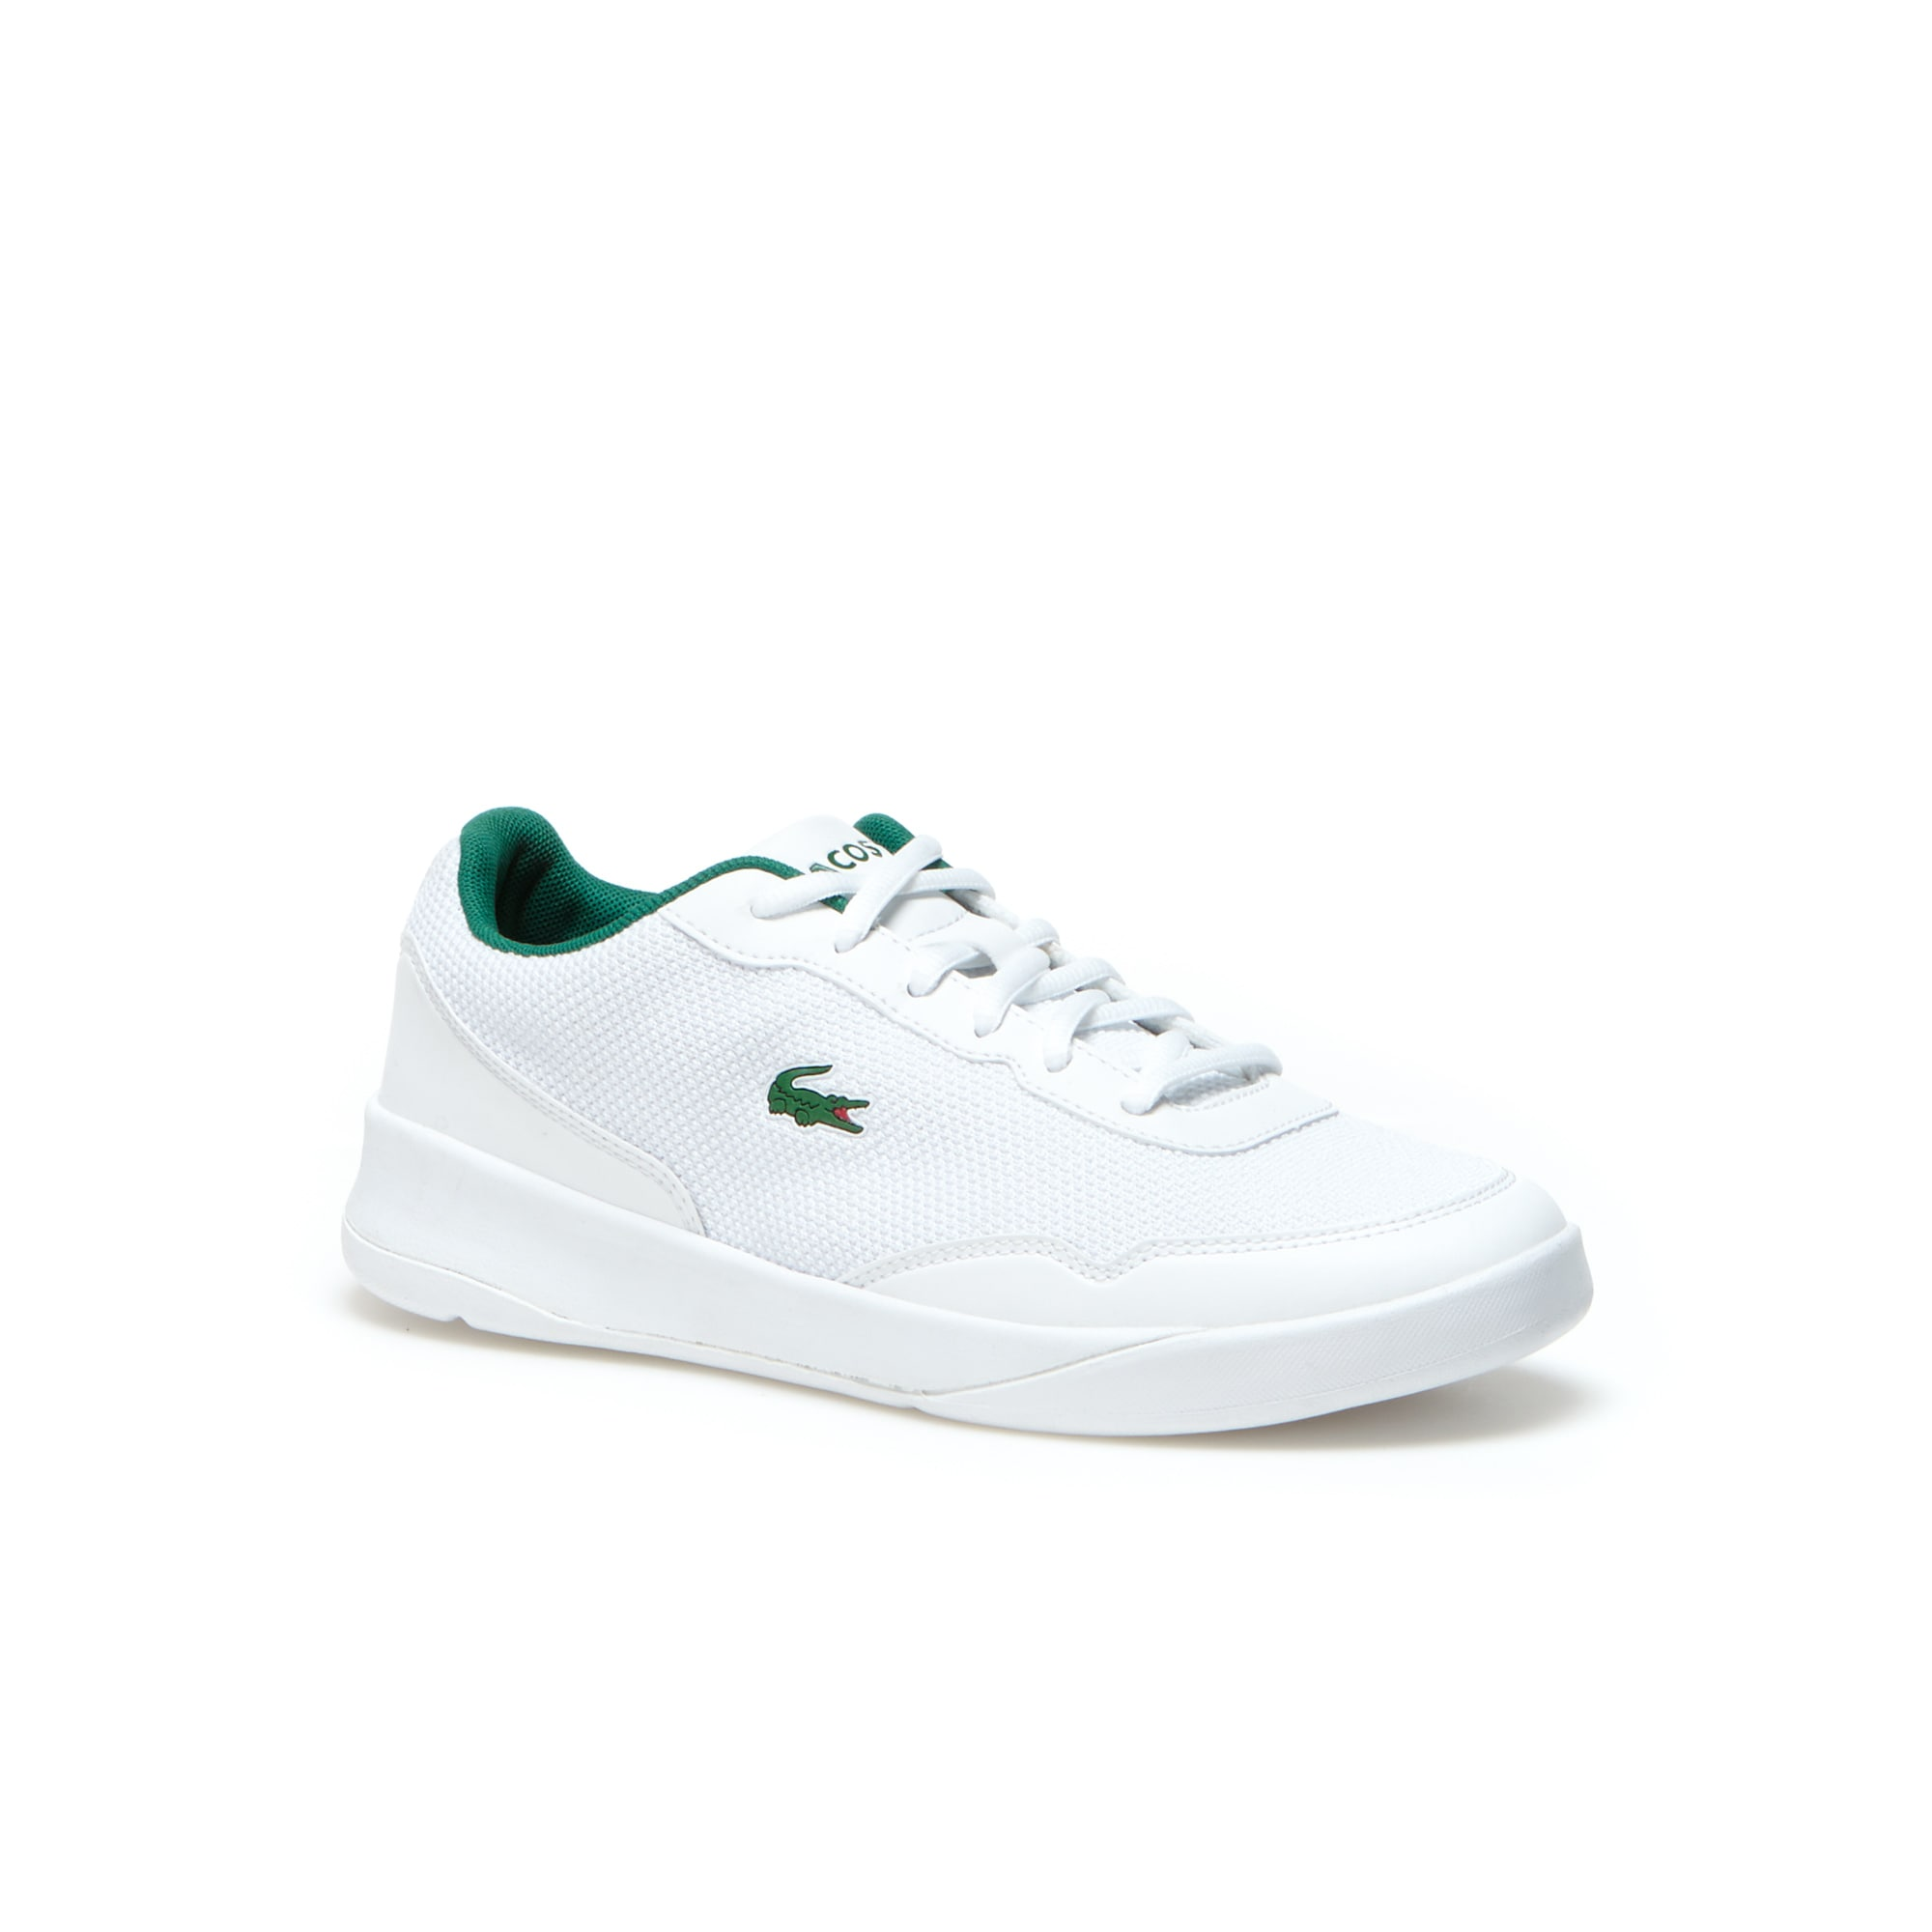 Women's LT Spirit Elite Textile Sneakers